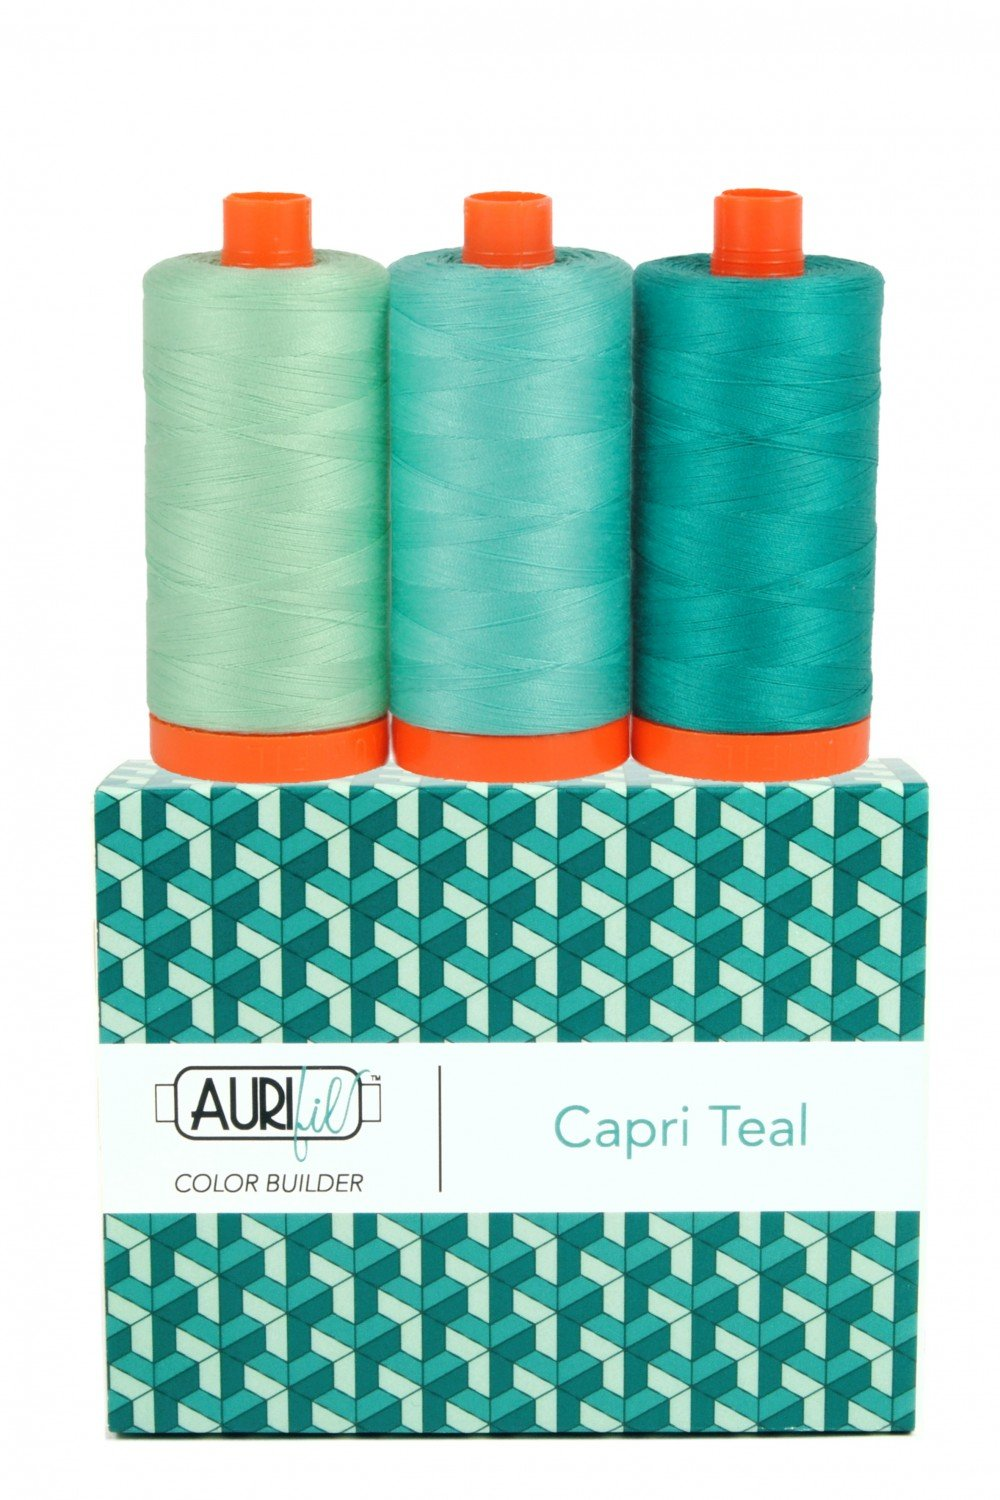 Aurifil Color Builder 3pc Set - Capri Teal